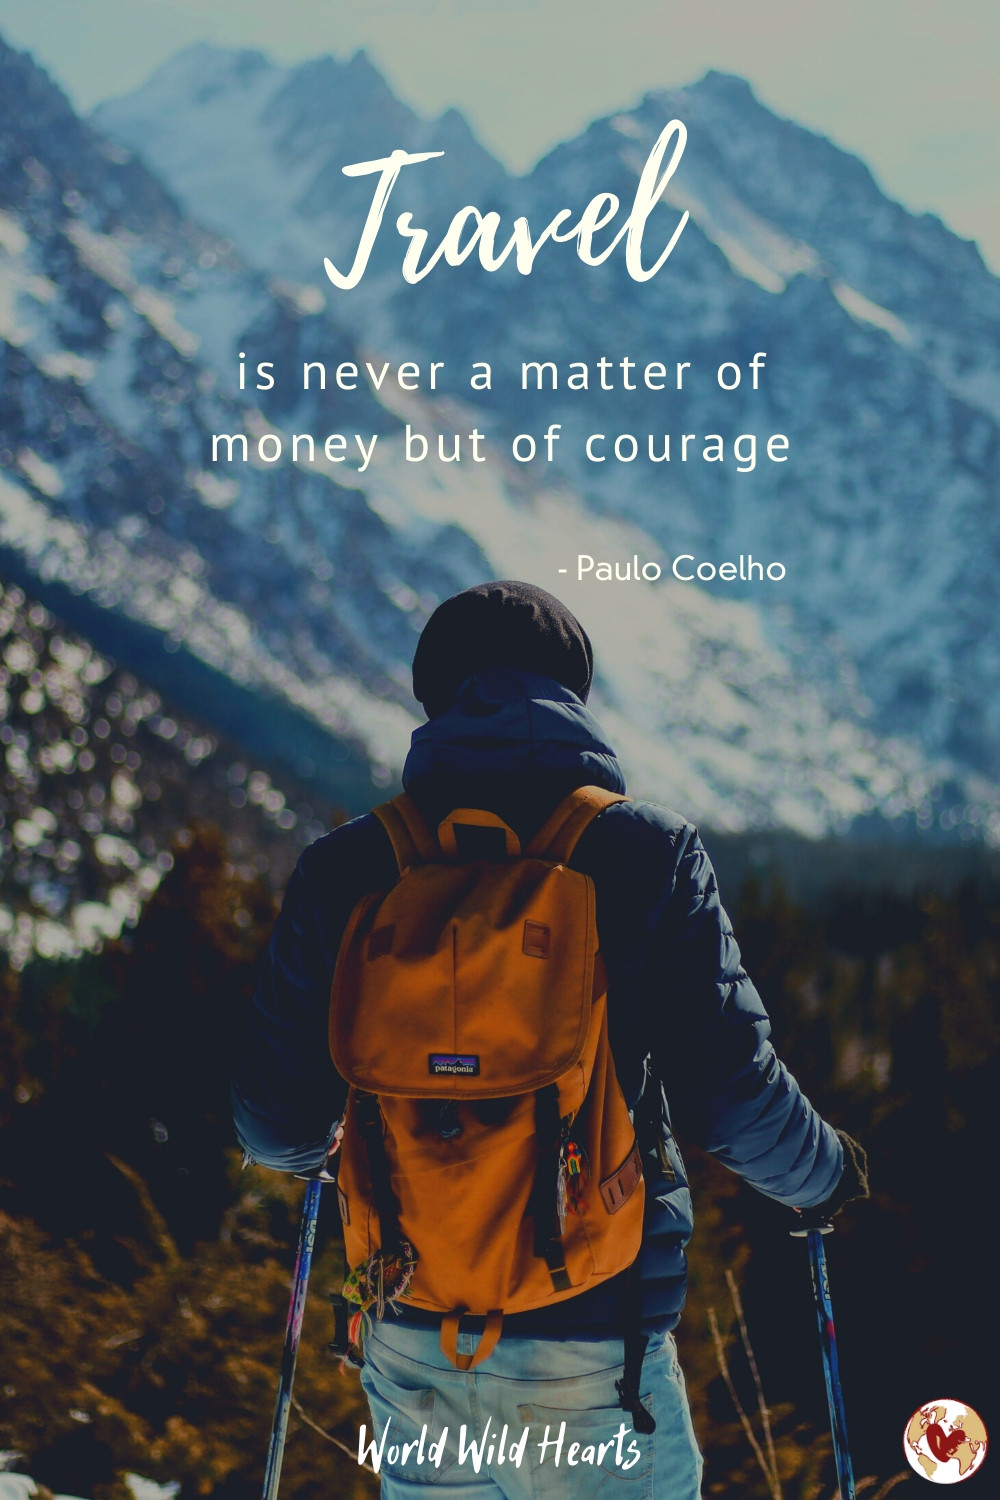 Travel quote by Paulo Coelho